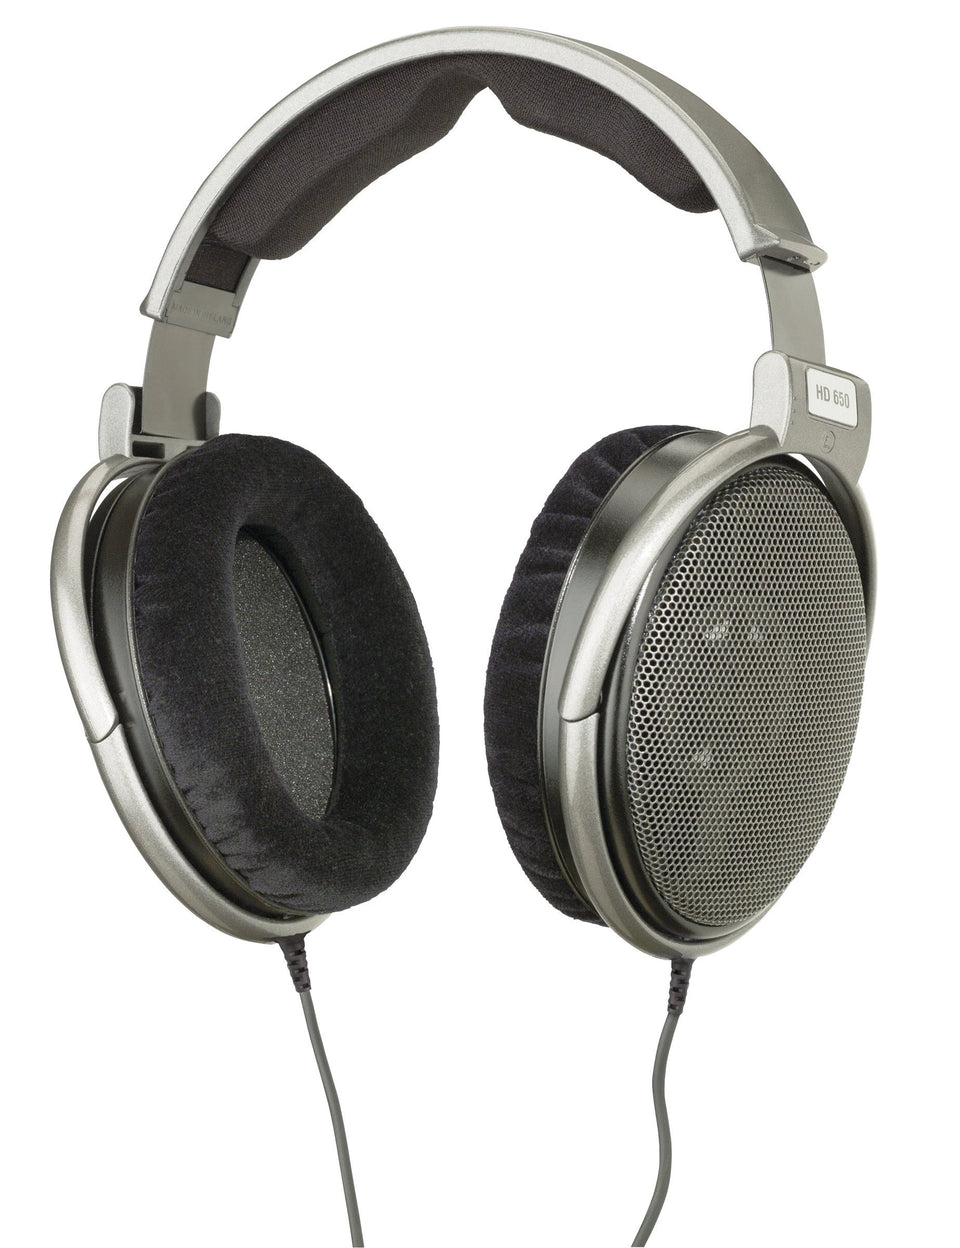 Sennheiser HD650 Over Ear Headphones